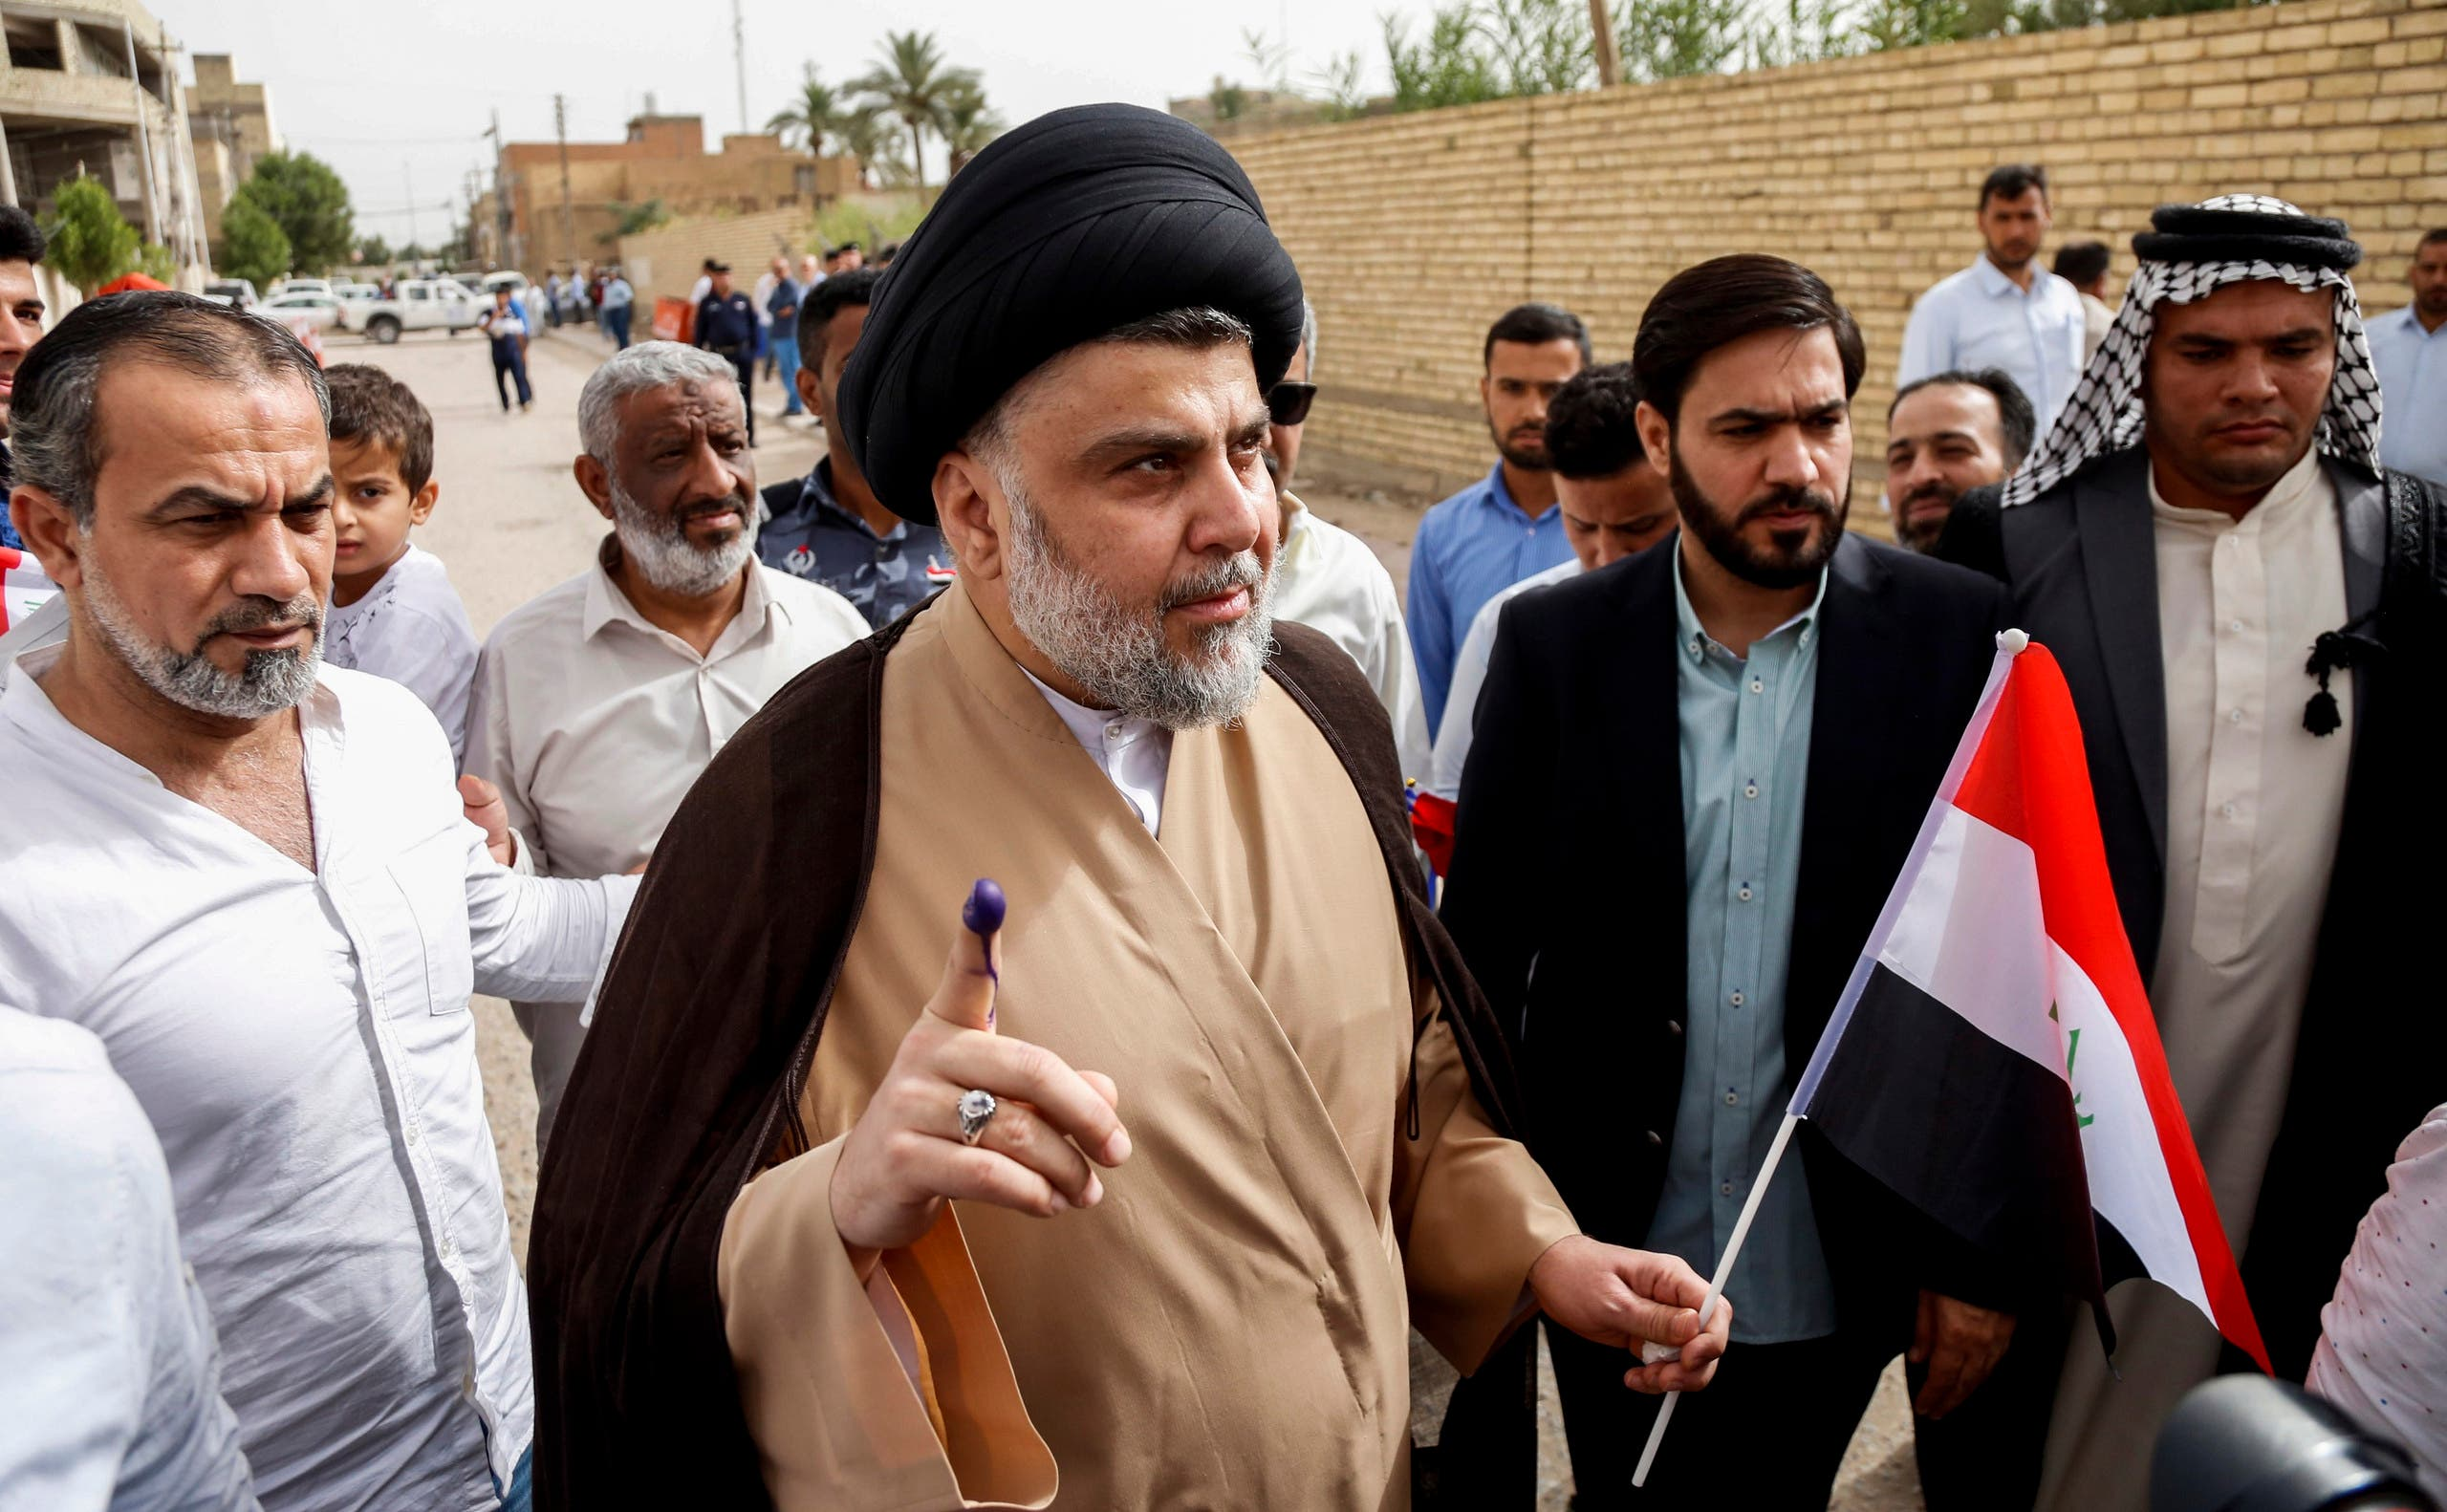 Moqtada al-Sadr shows his ink-stained index finger outside a polling station in Najaf on May 12, 2018 as the country votes in the first parliamentary election since declaring victory over ISIS. (AFP)